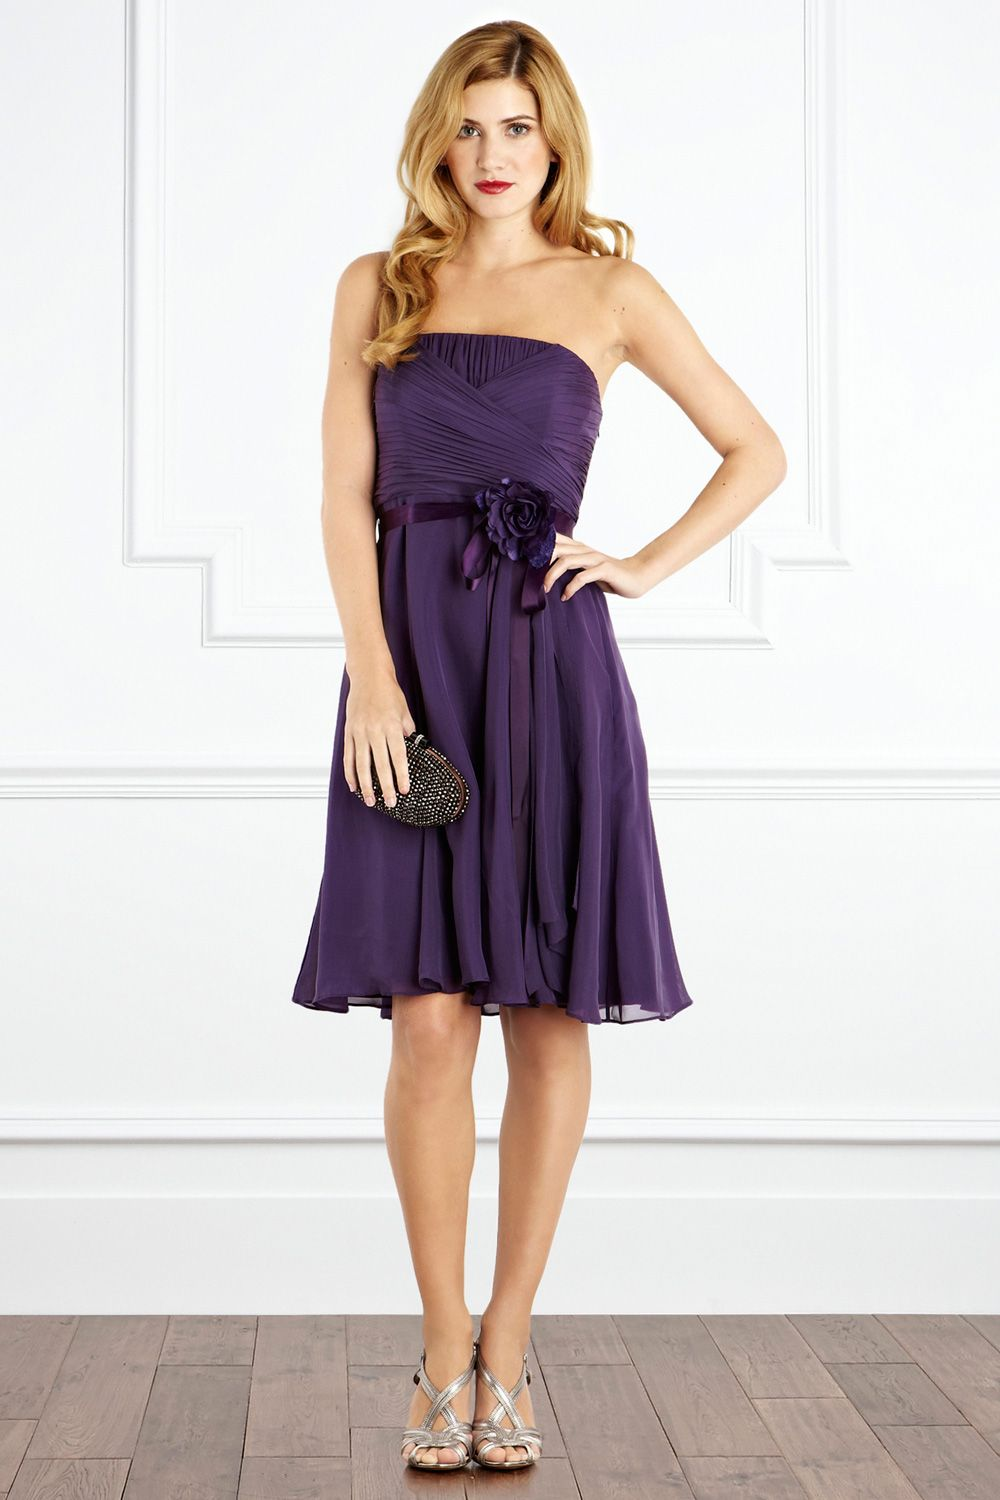 Allure by Coast in purple | Fashion and Style I dig | Pinterest